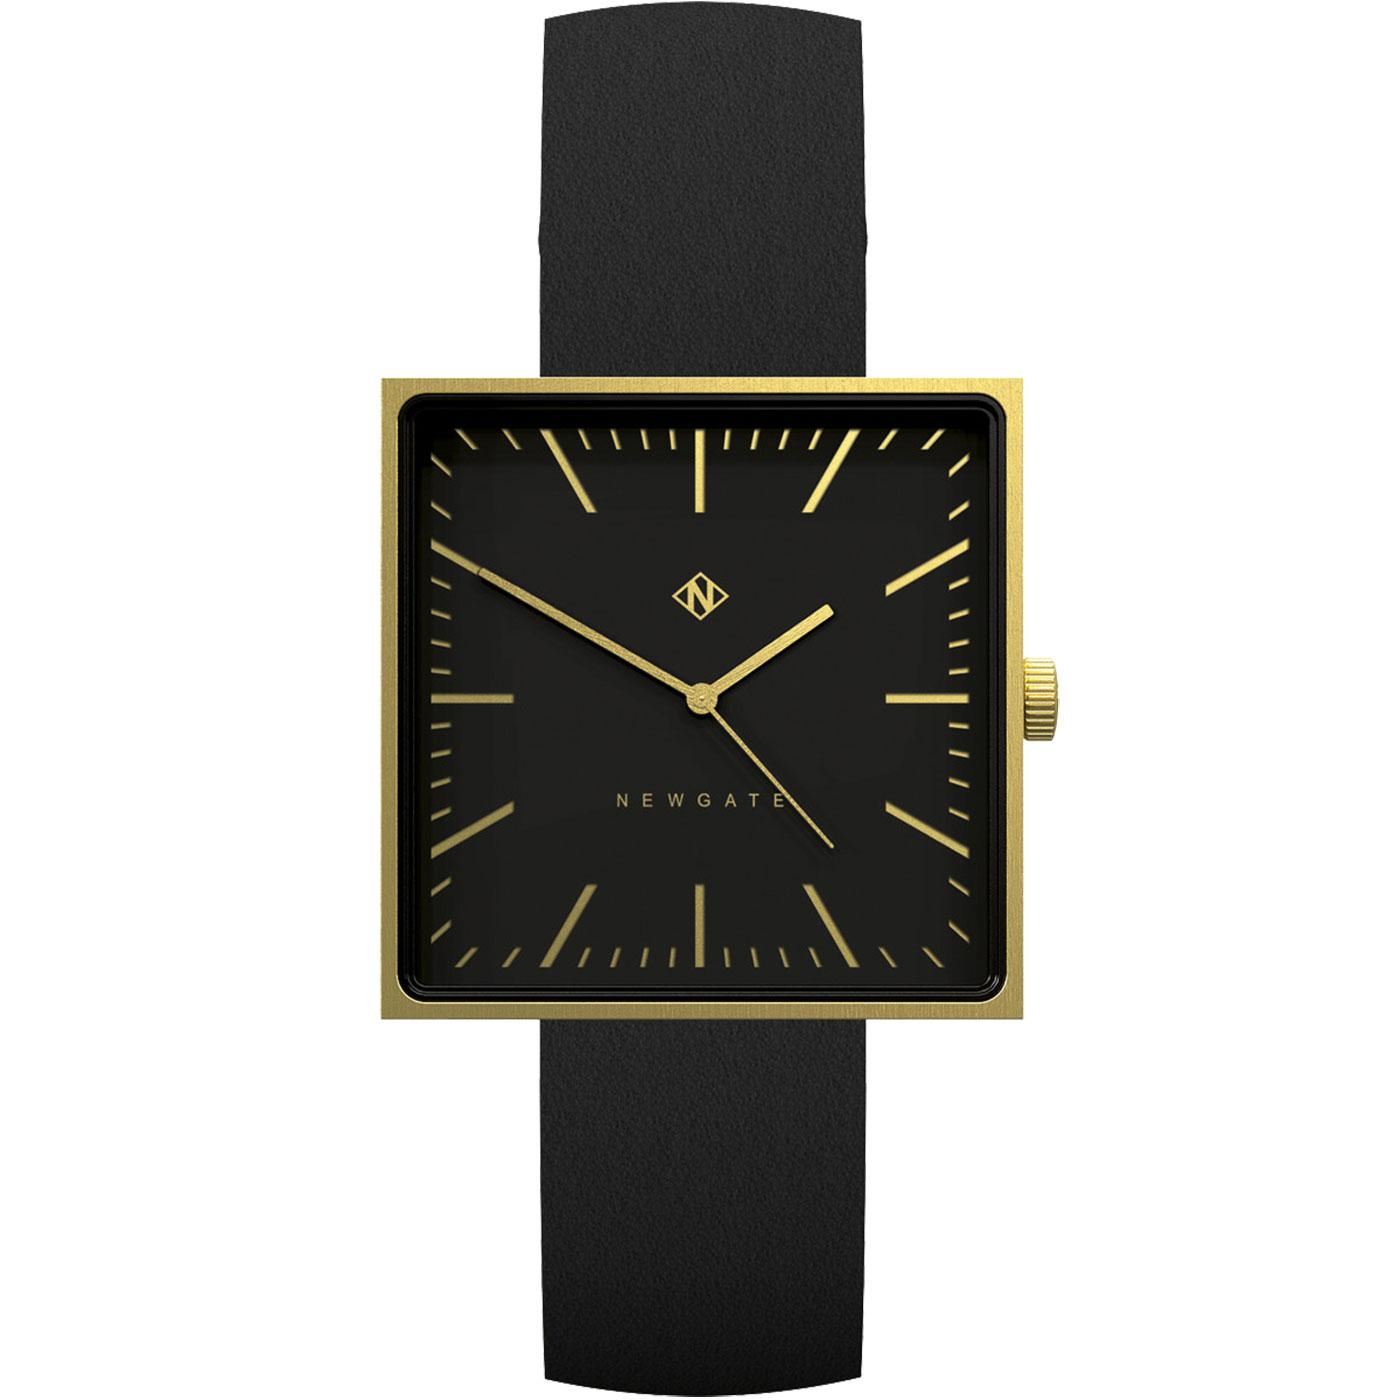 The Cubeline NEWGATE CLOCKS Retro Watch Black